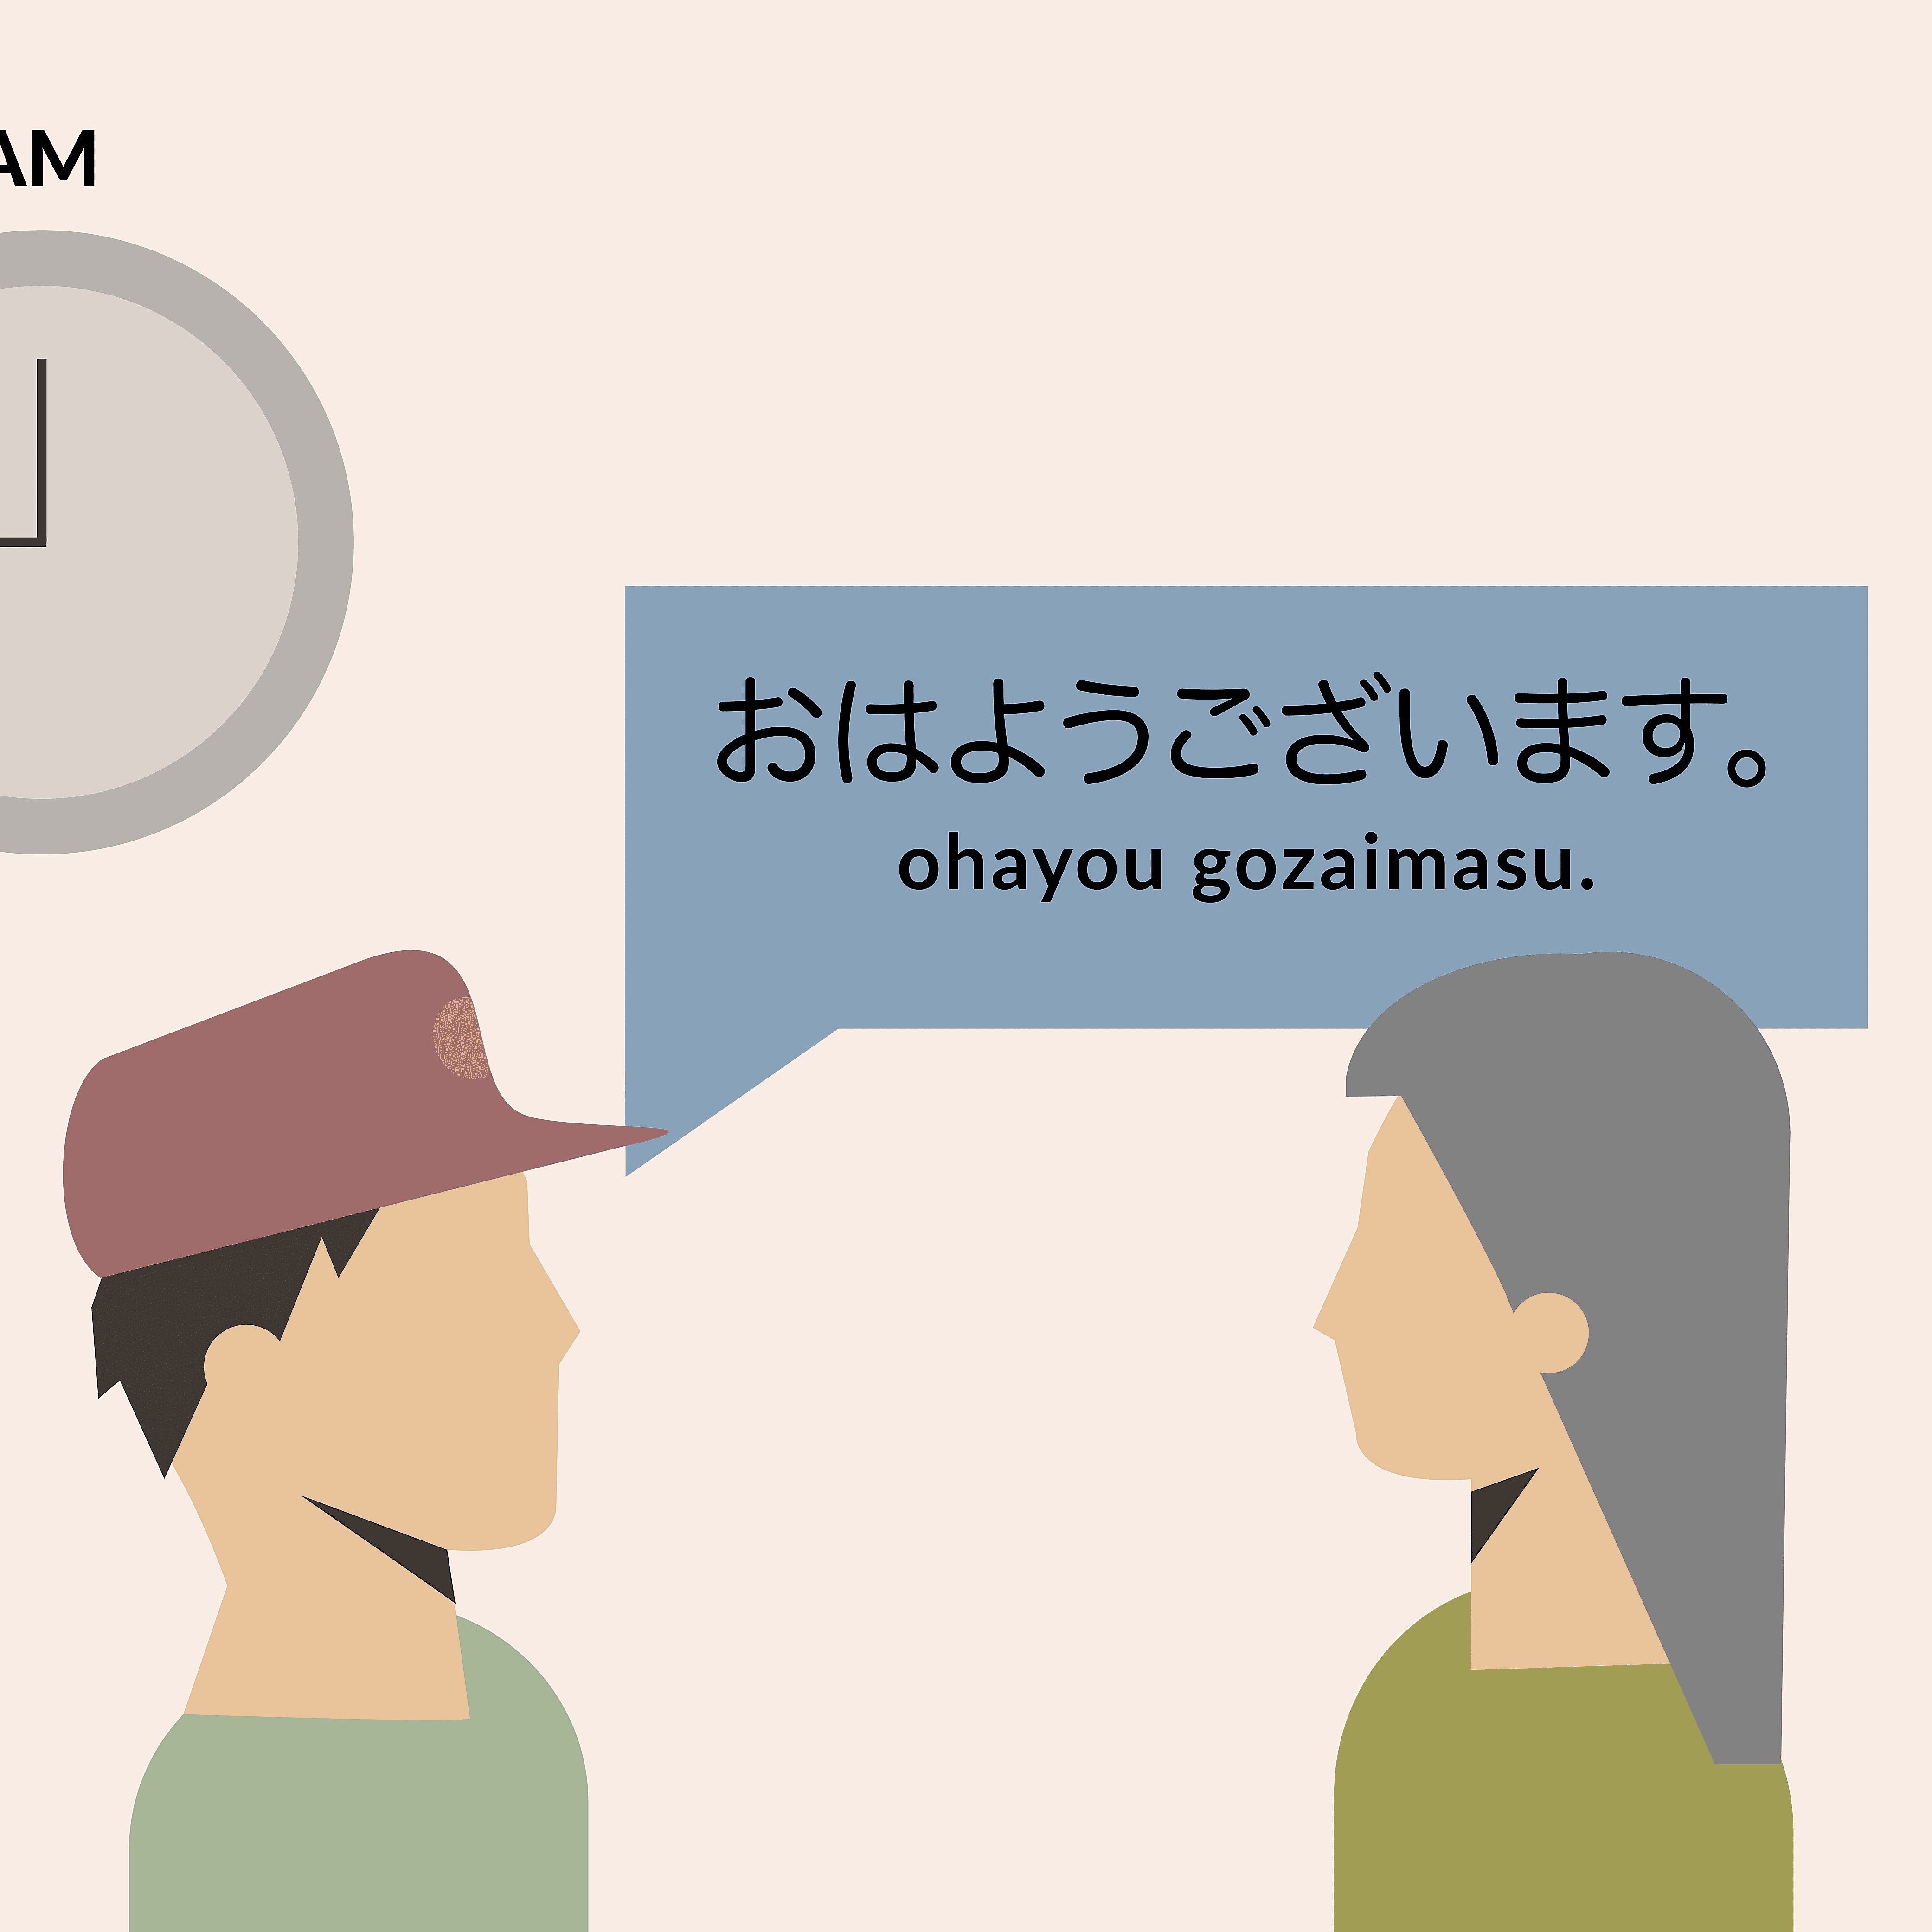 Good Morning' and Other Common Japanese Greetings